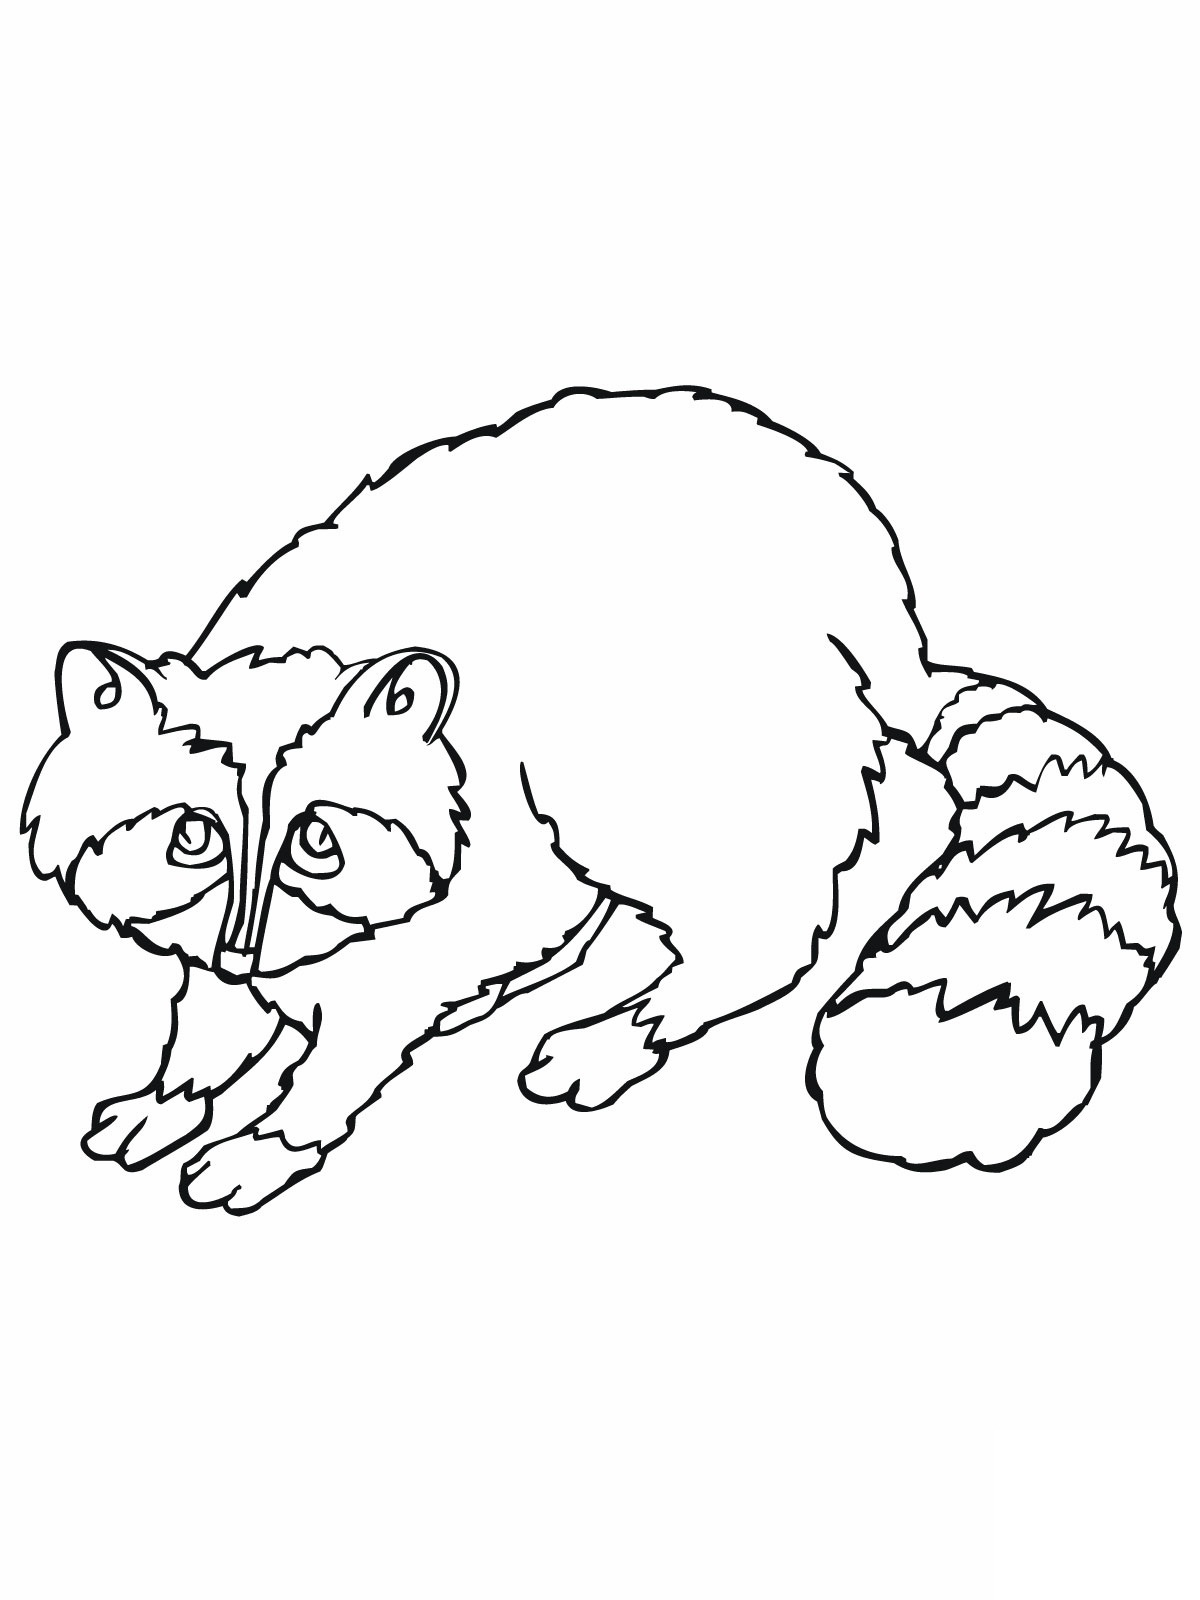 printalbe coloring pages - photo#3